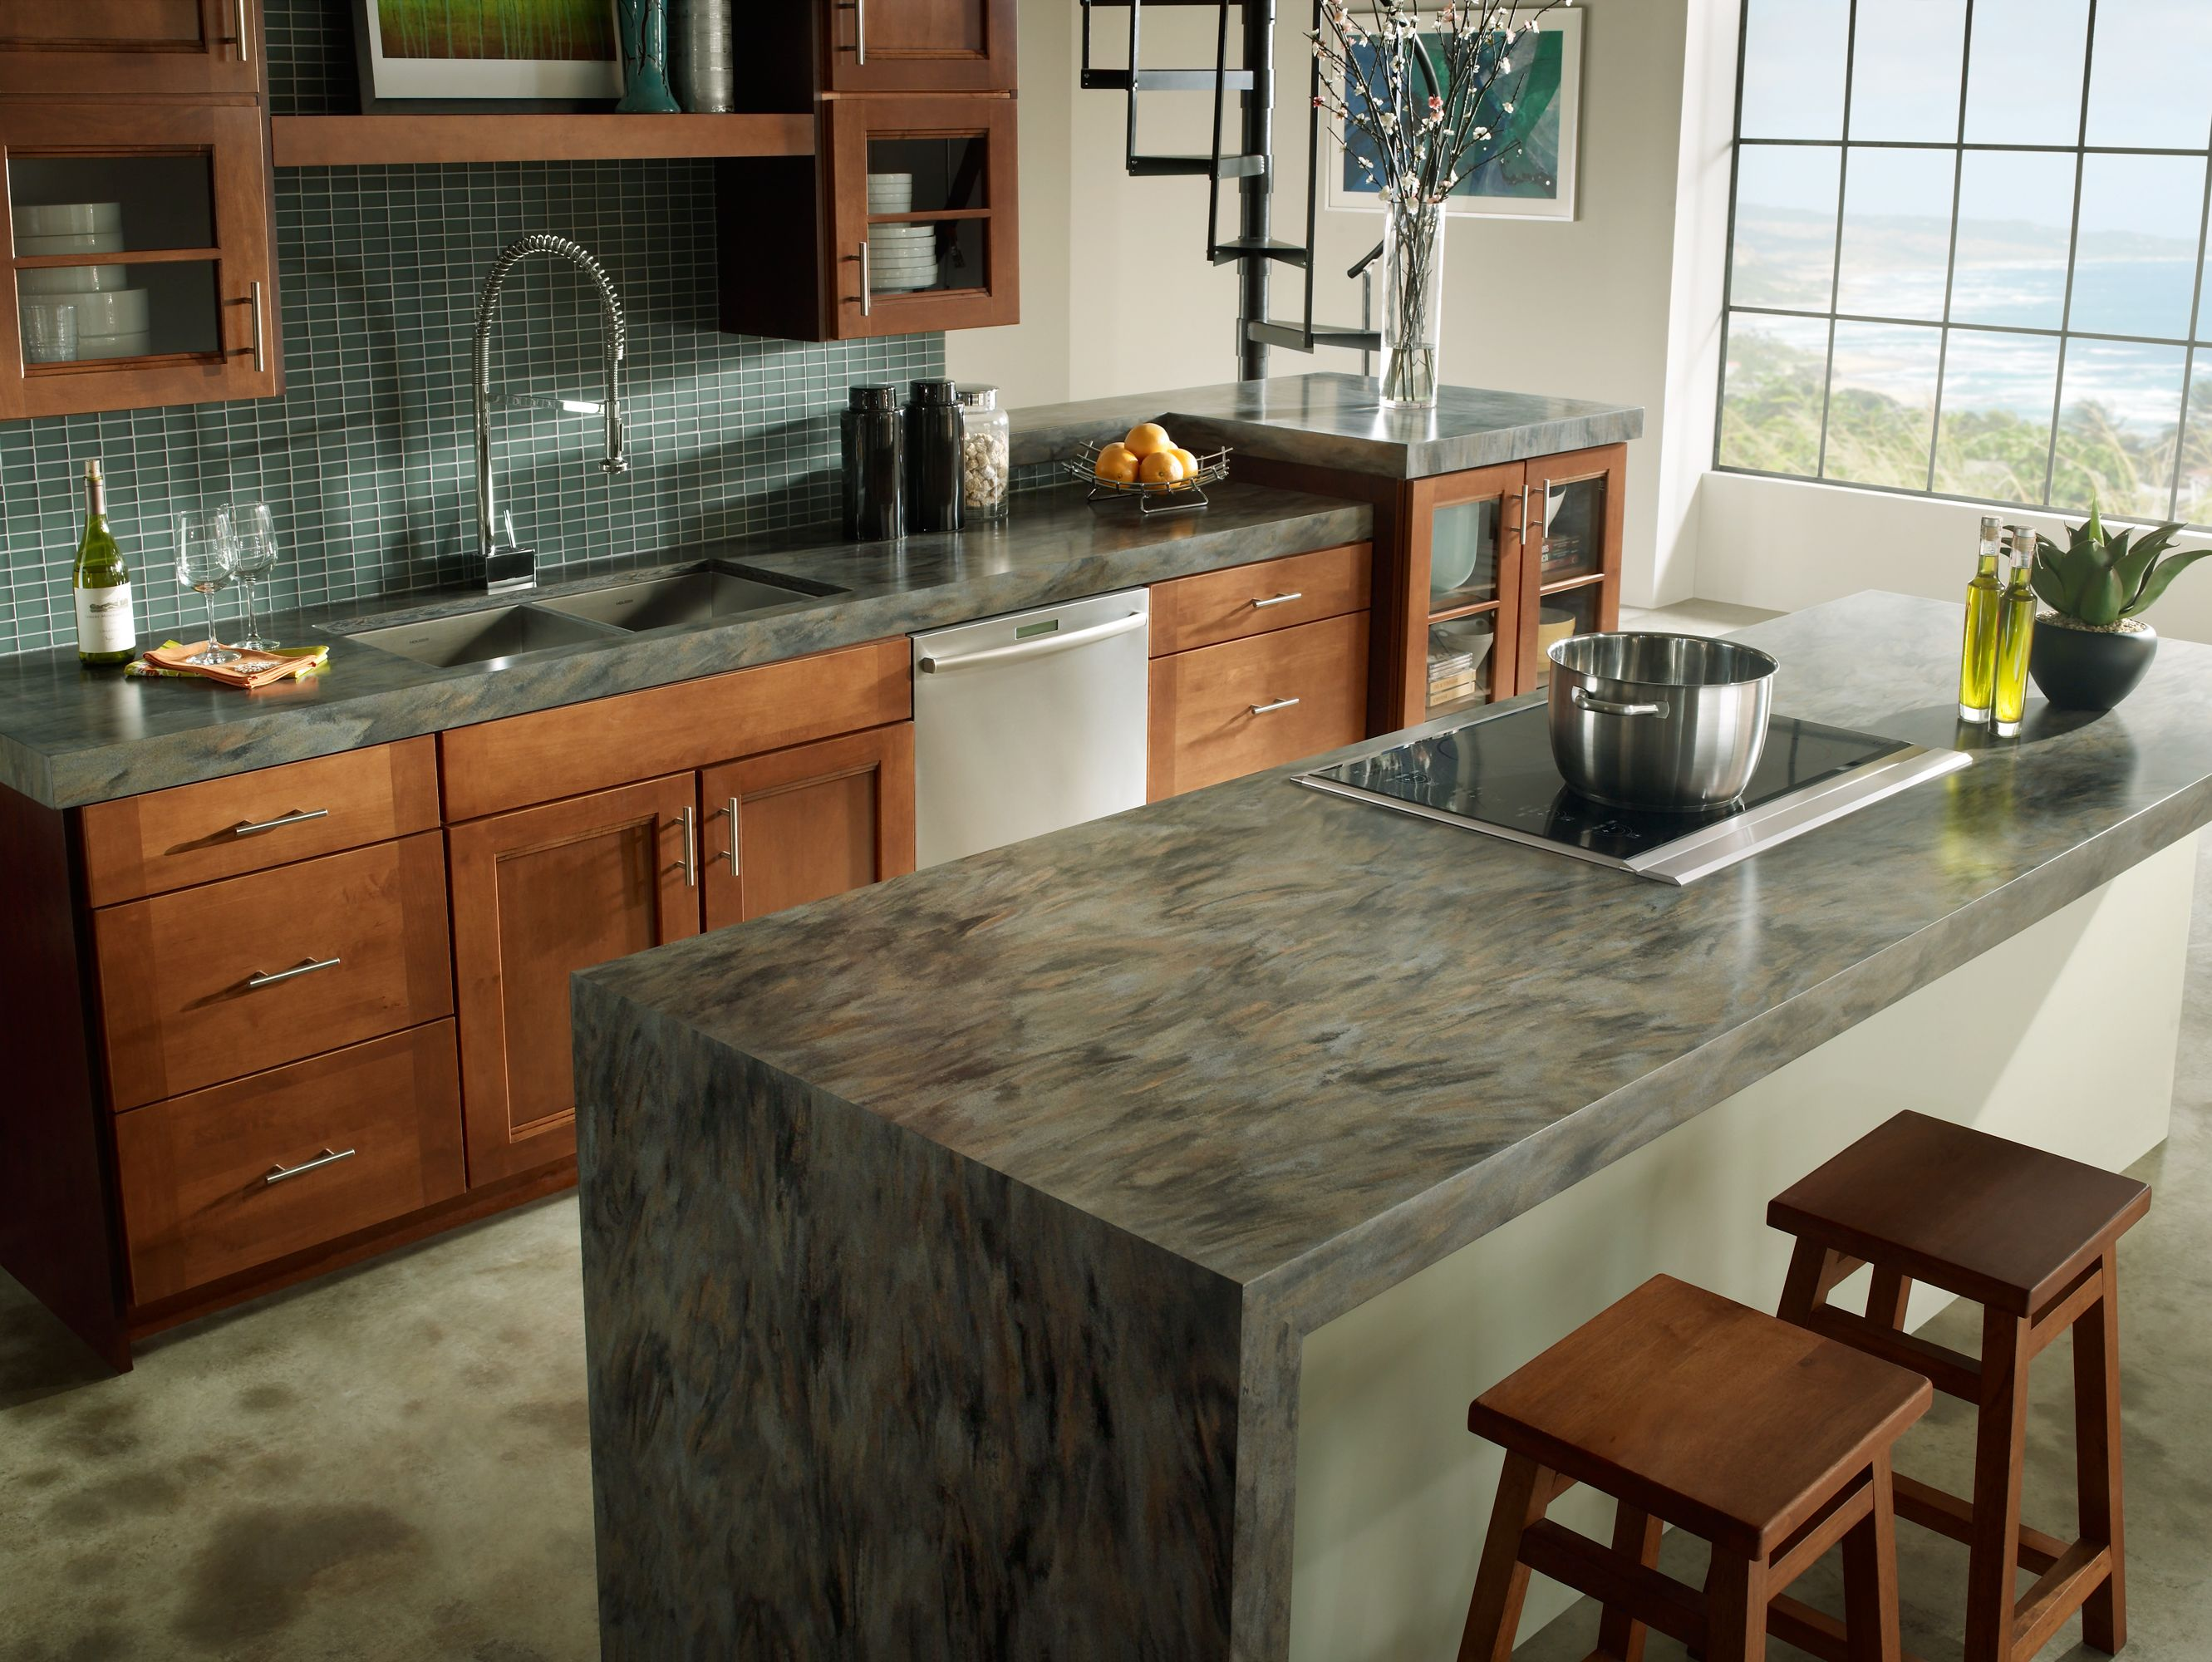 kitchen countertops best kitchen countertops Kitchen Attractive Gray Mosaic Kitchen Island Marble Countertop Along With Nice Kitchen Cabinet Decoration Best Choice For Kitchen Countertops Design Ideas